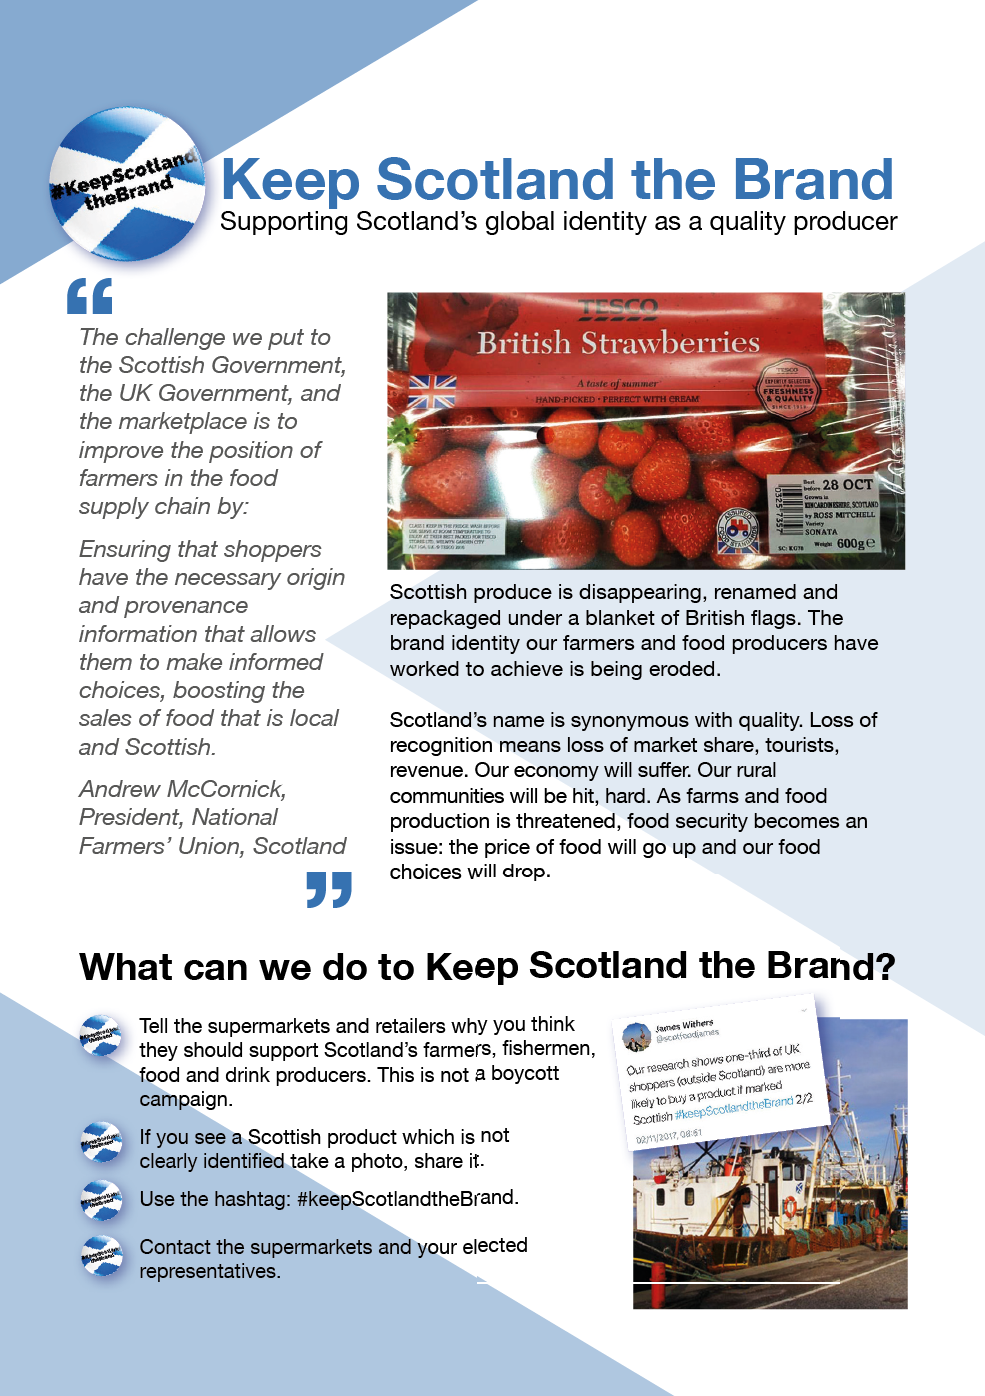 Keep Scotland the Brand leaflets